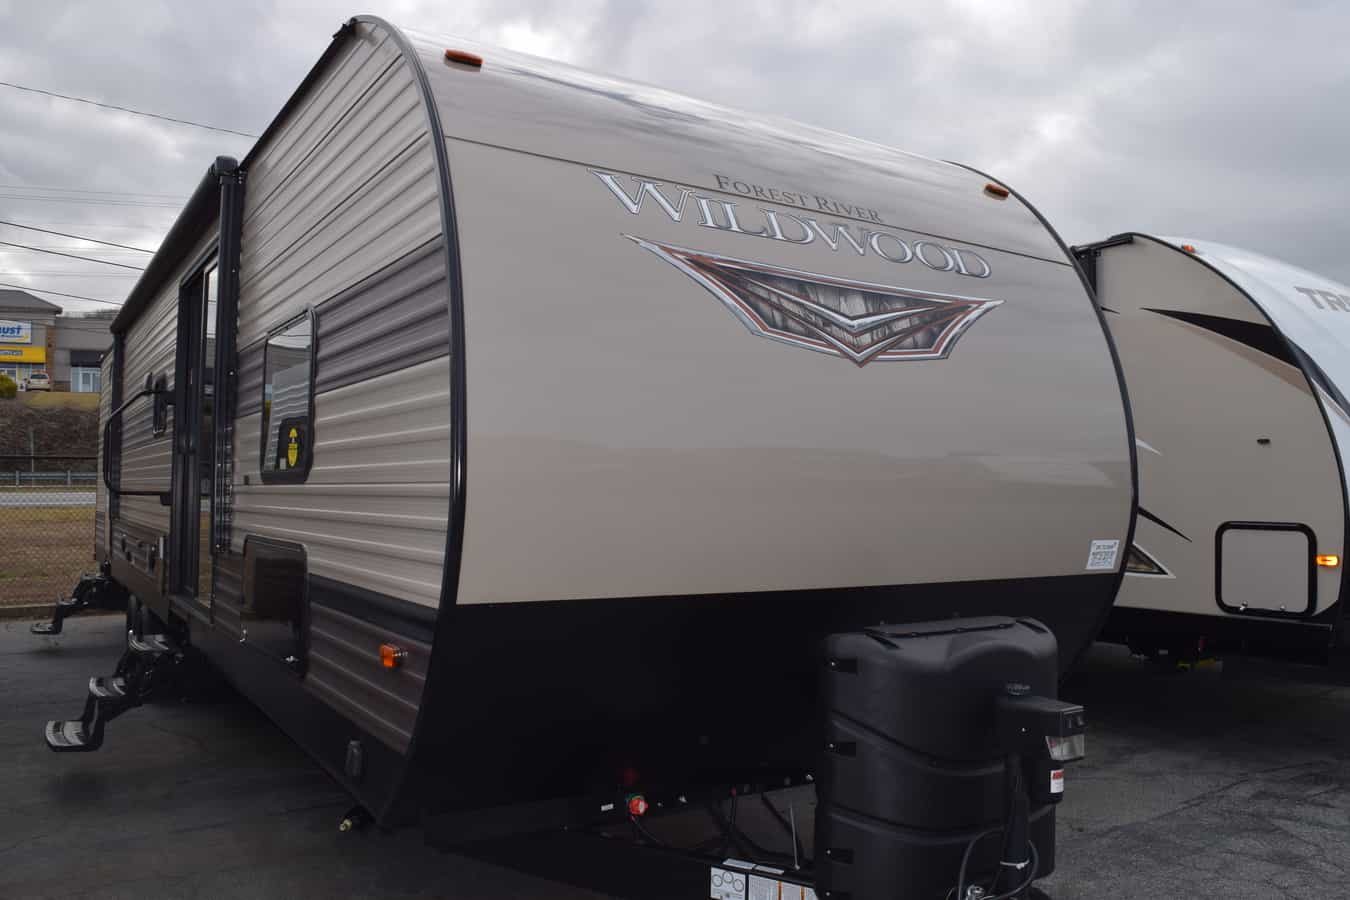 NEW 2019 Forest River WILDWOOD 36BHDS - Three Way Campers